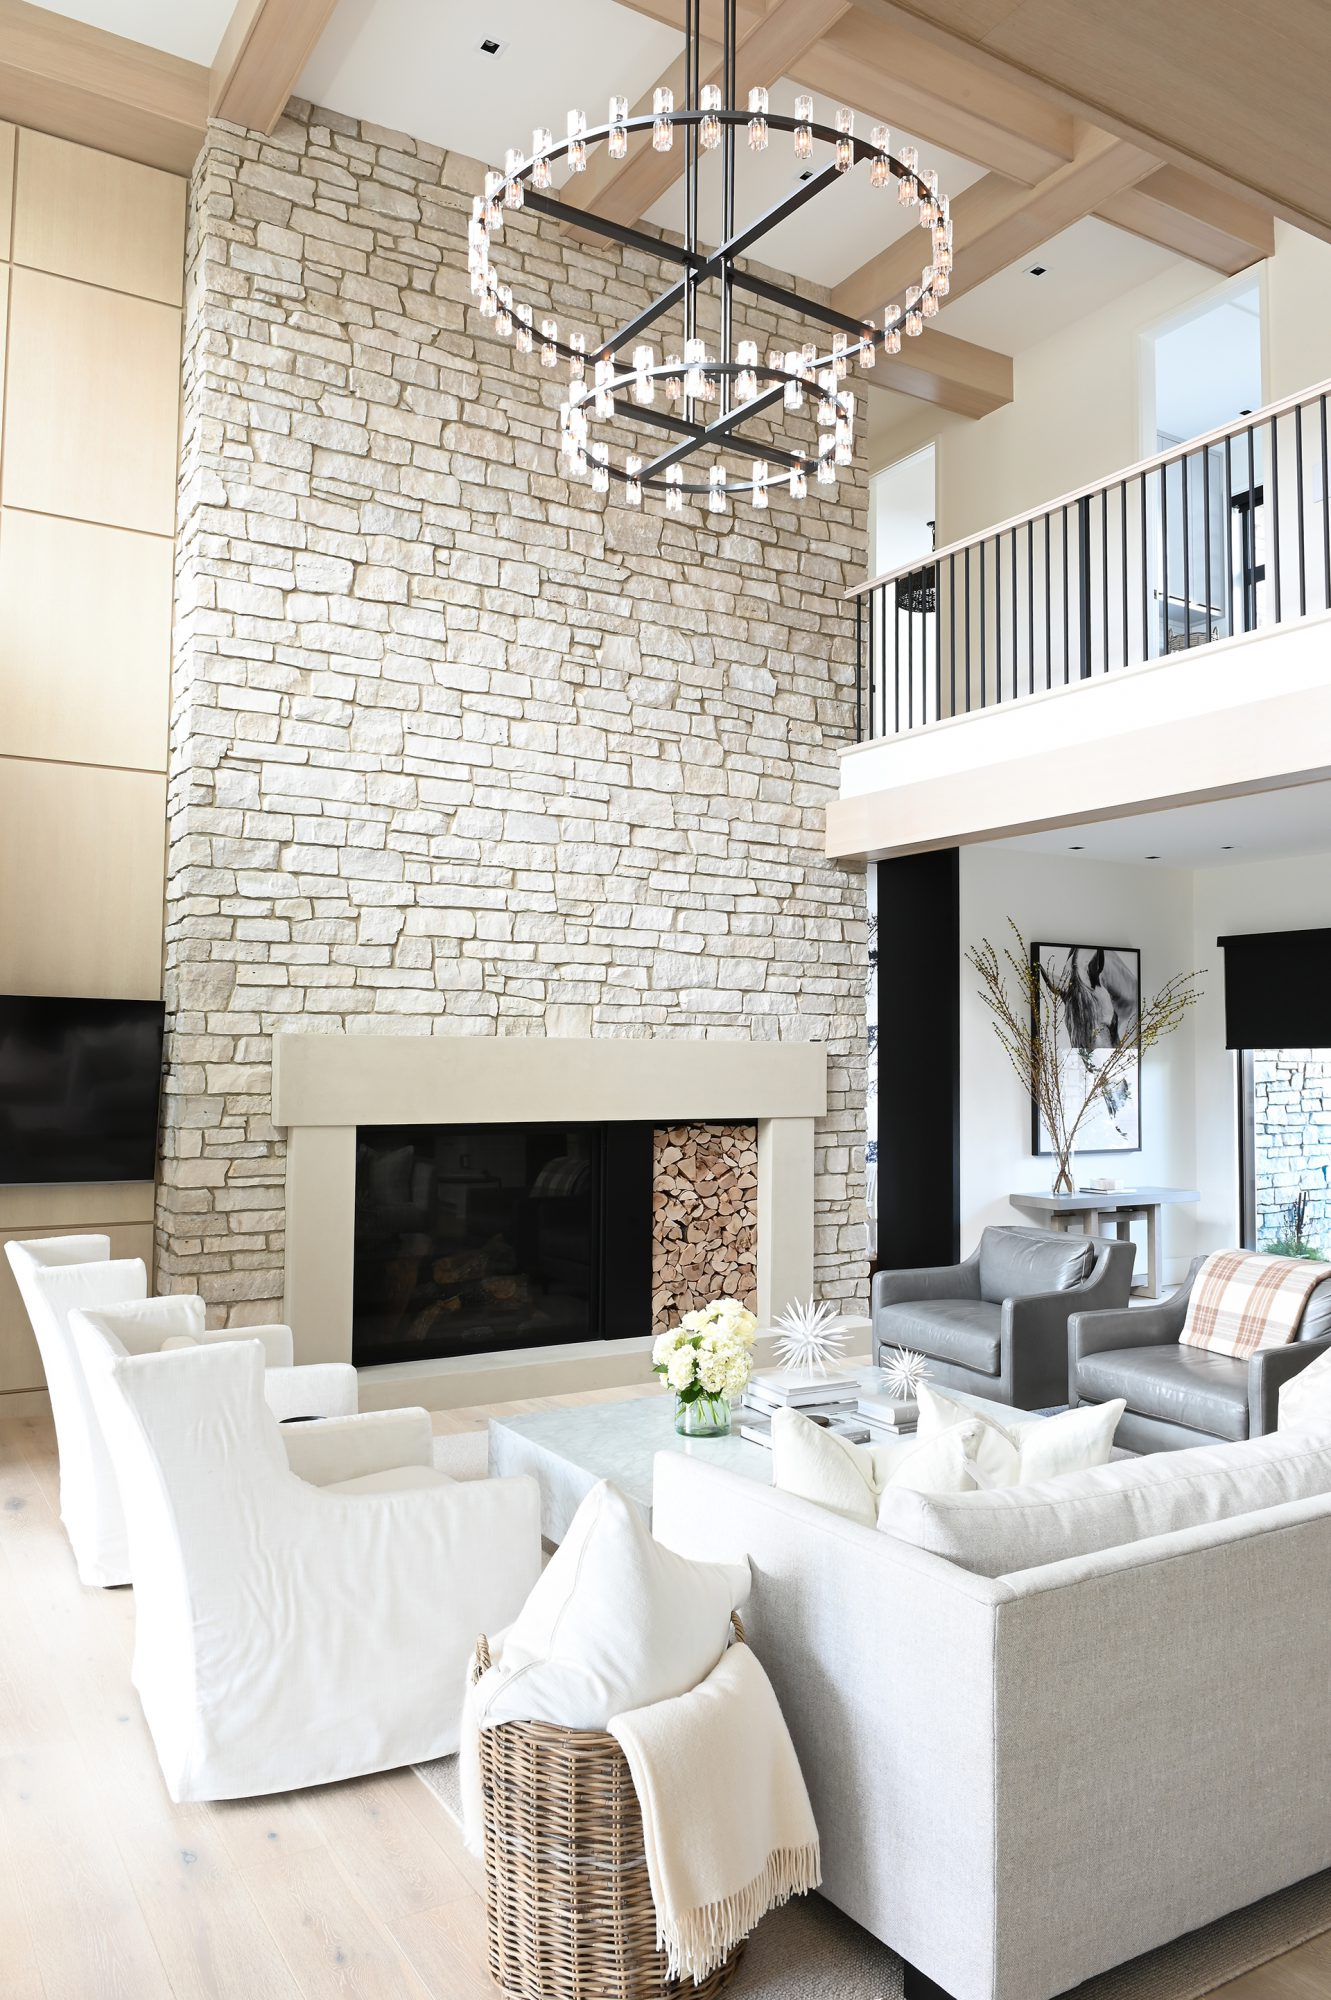 Ferme Moderne grand living room built by Midland Premium Properties in Vancouver, BC